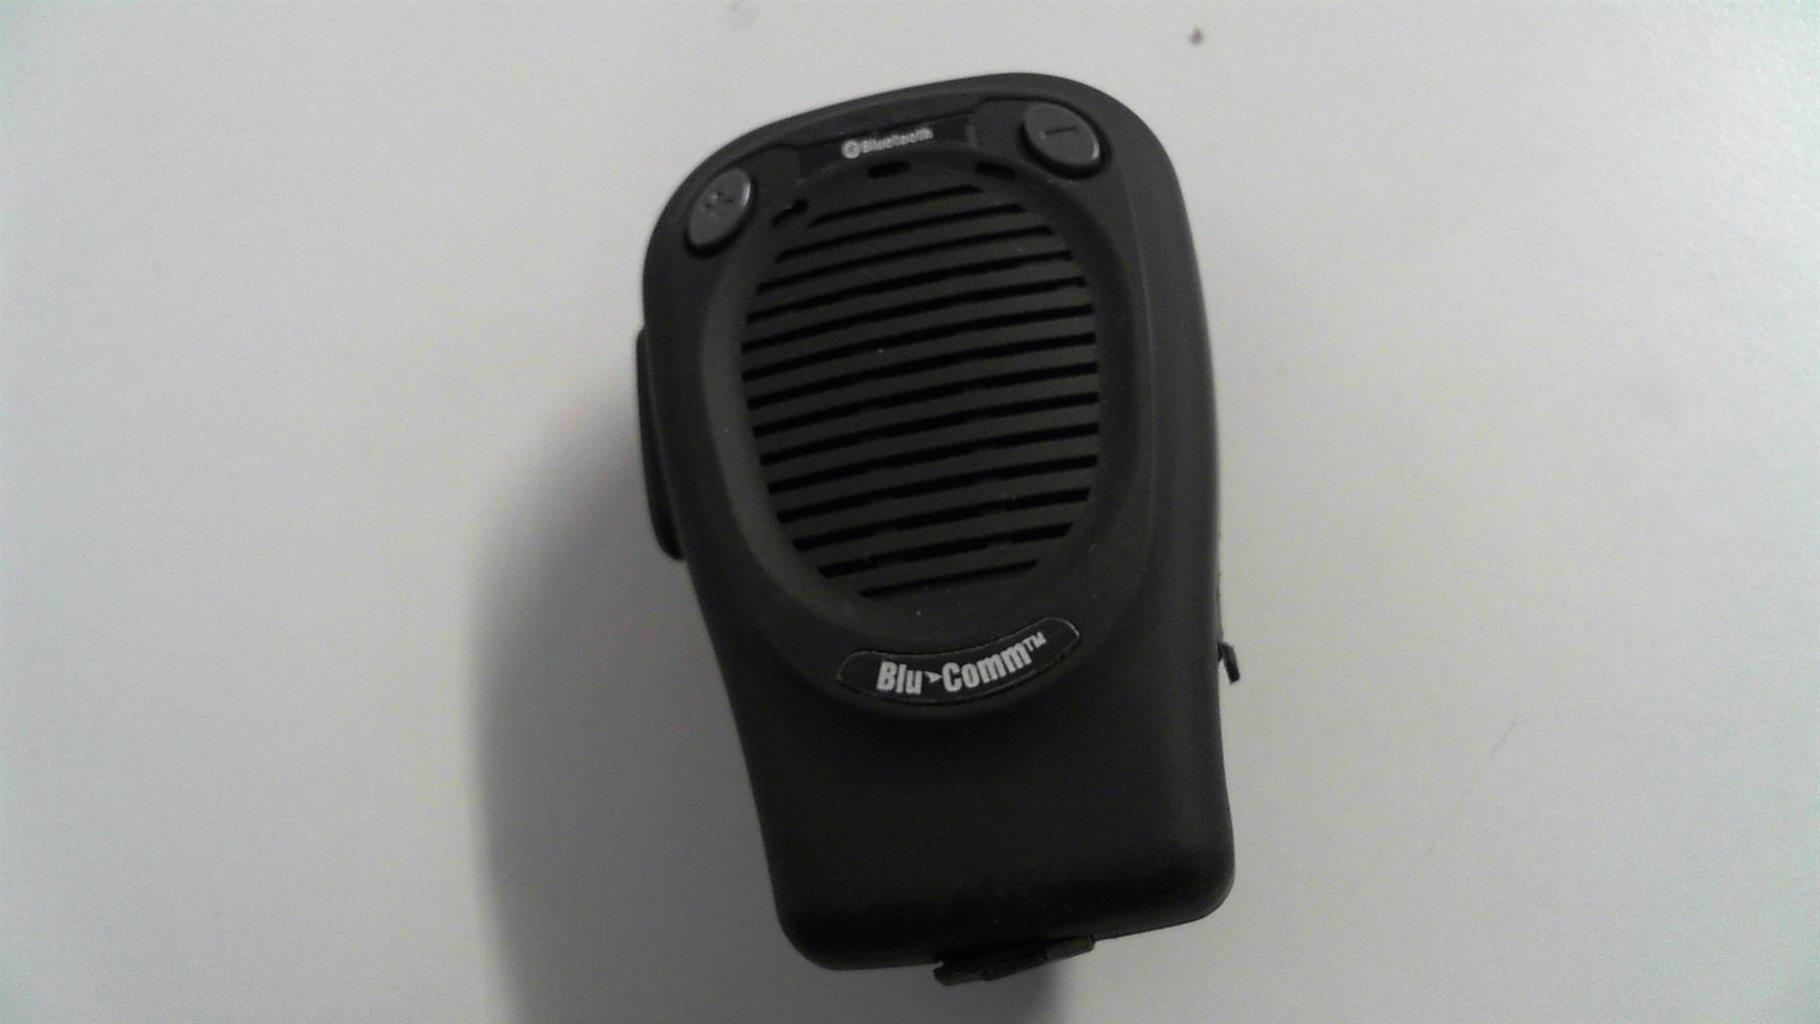 Icom  devices and accessories